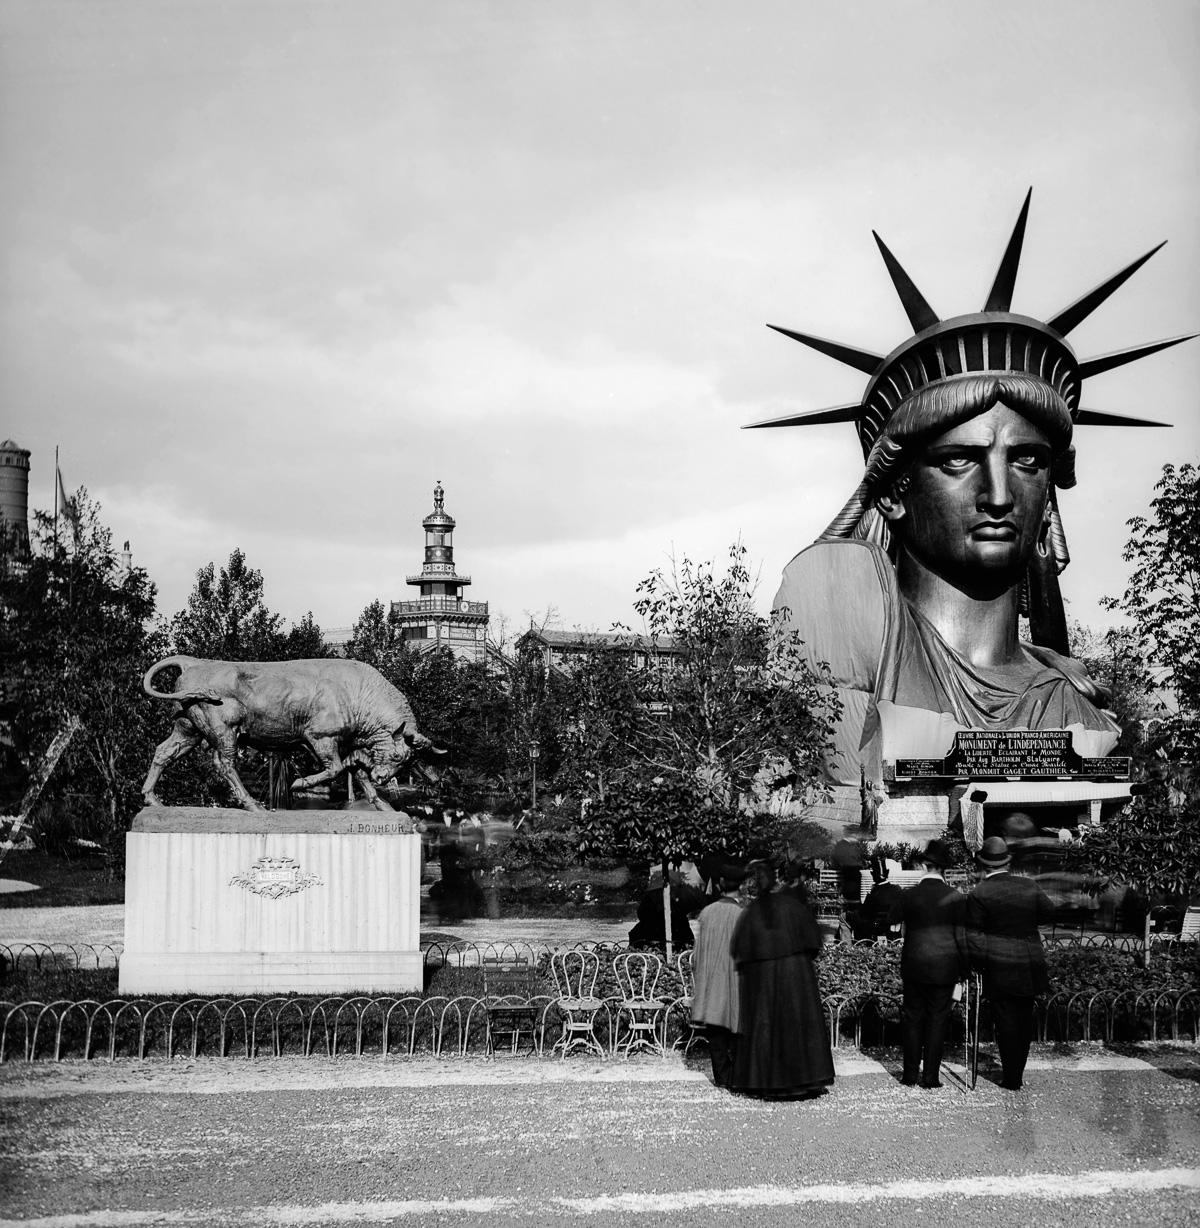 1878 World Fair in Paris, Park of the Champ-de-Mars, On the left: Bull sculpted by Isidore-Jules Bonheur (1827-1901), On the right: planished copper bust of the Statue of Liberty (original by Auguste Bartholdi, 1834-1904), by Monduit, Gaget and Gauthier, Detail of a stereoscopic view. (Photo by Léon et Lévy/Roger Viollet/Getty Images)